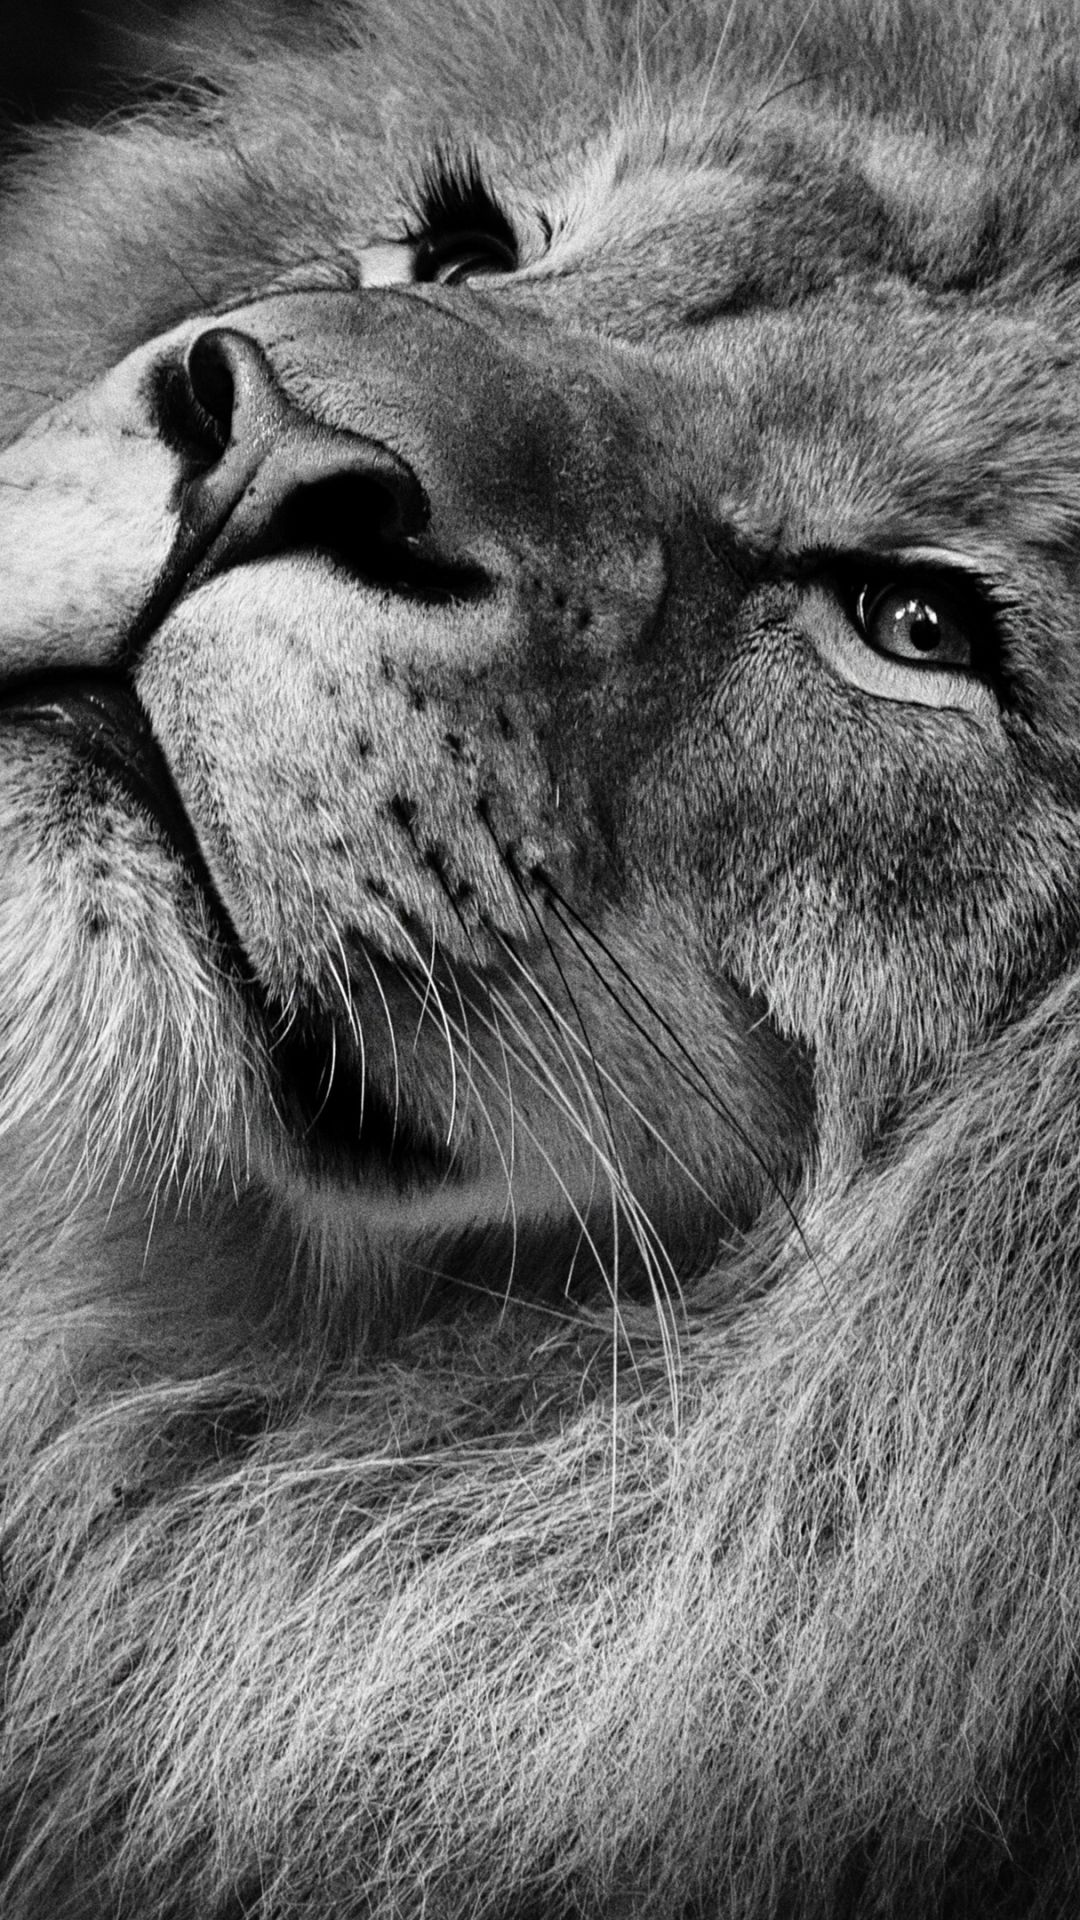 Best 7 Black Lion Wallpapers High Definition For Your Android Or Iphone Wallpapers Android Iphone Wallpaper Majestic Animals Animals Animals Beautiful